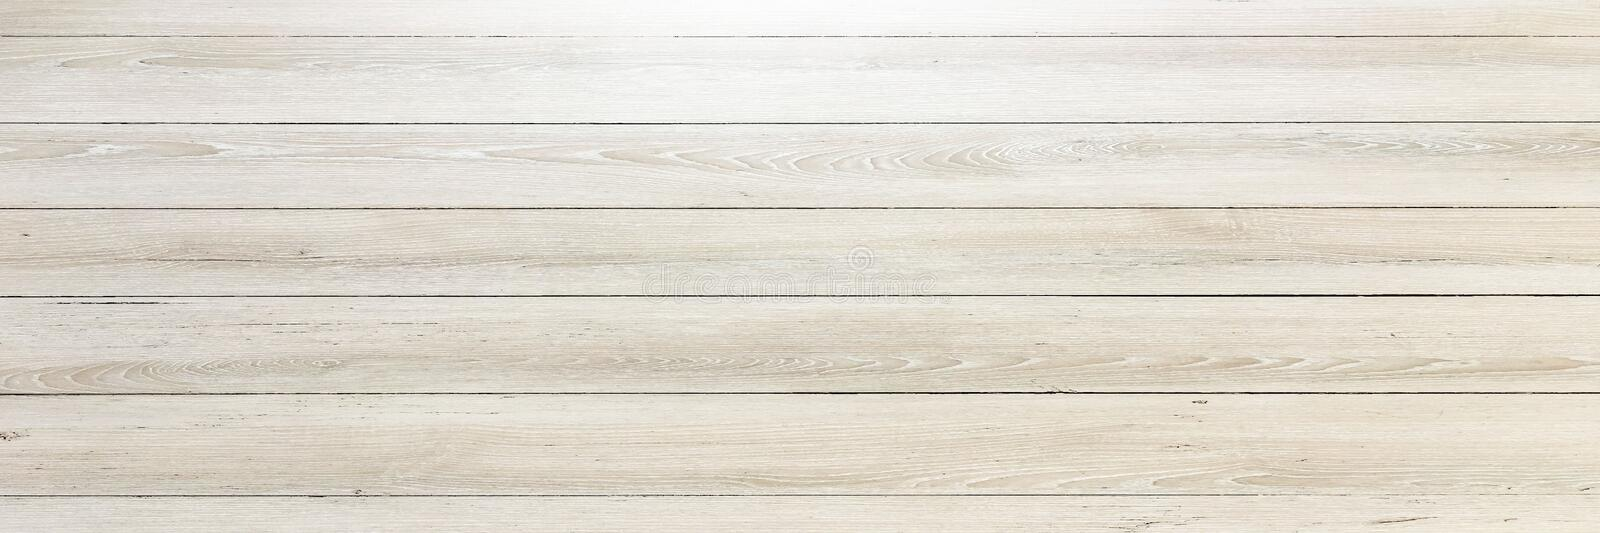 Washed wood texture, white wooden abstract light background. Washed wood texture, white wooden abstract background royalty free stock image